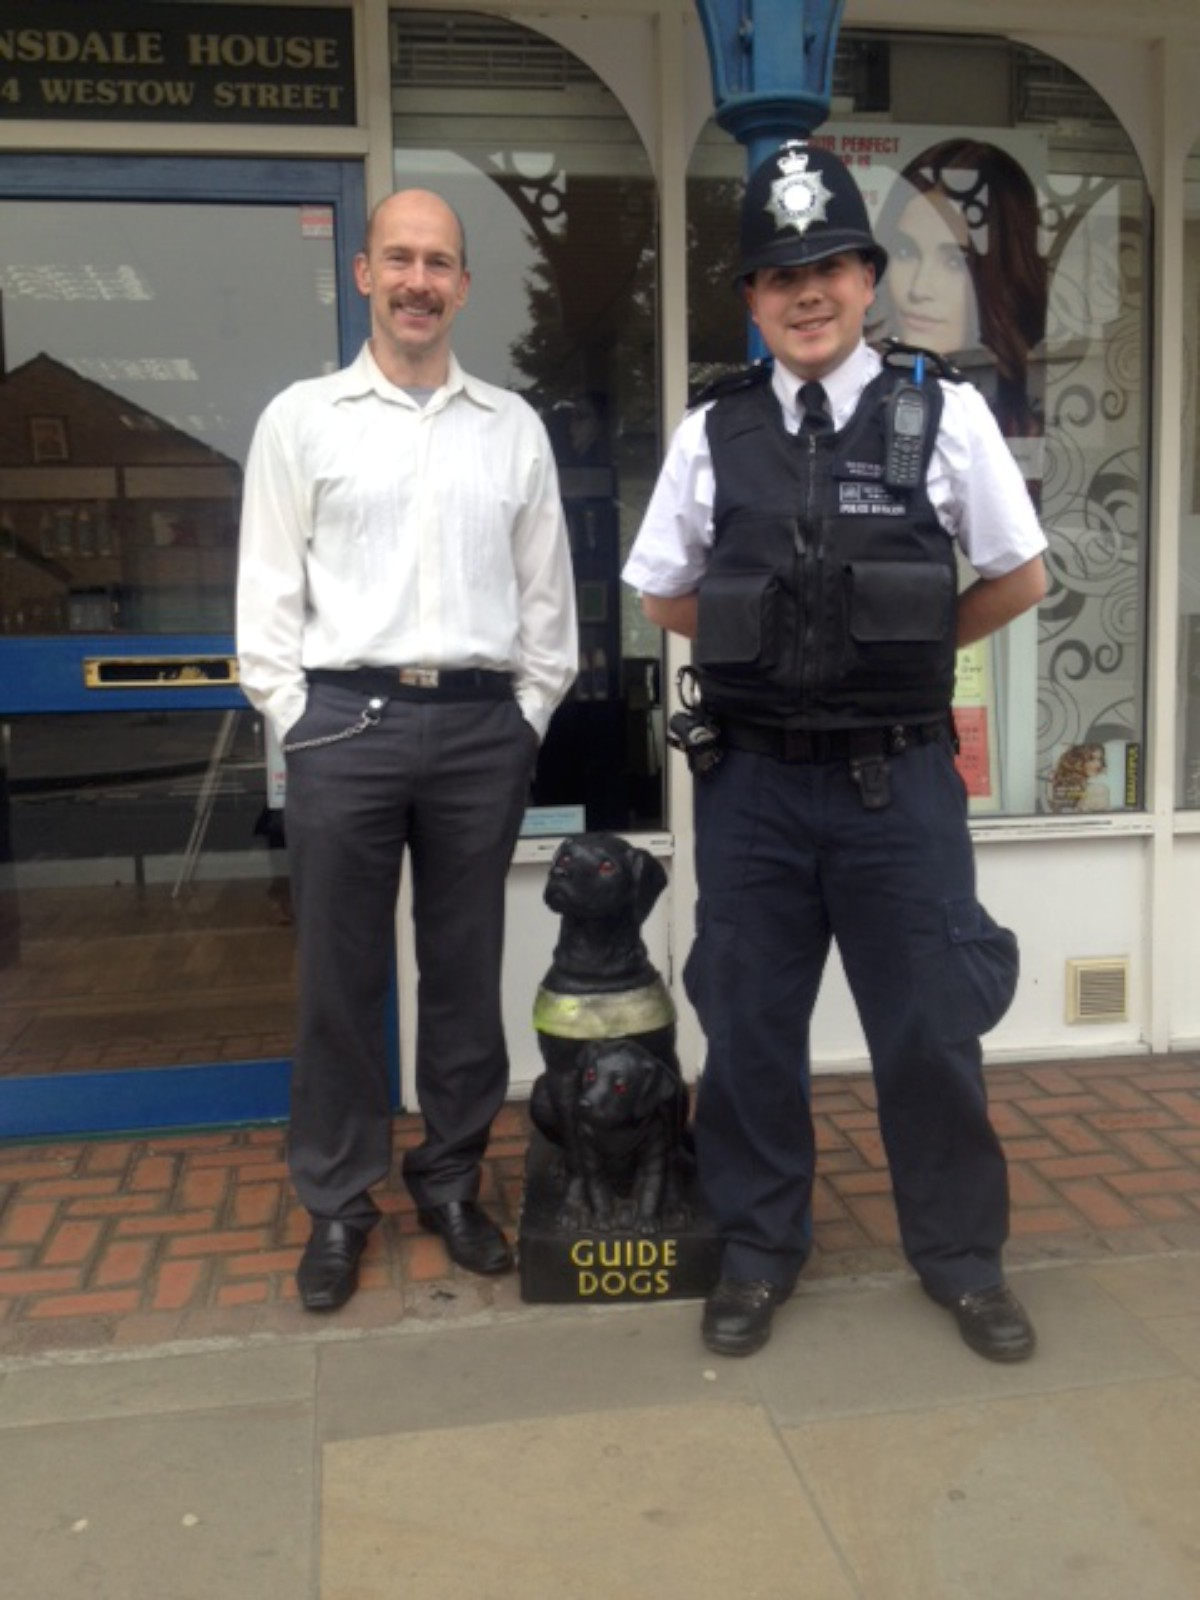 PC Woolley has returned the Guide Dogs for the Blind charity collection box to the owner of the hair salon